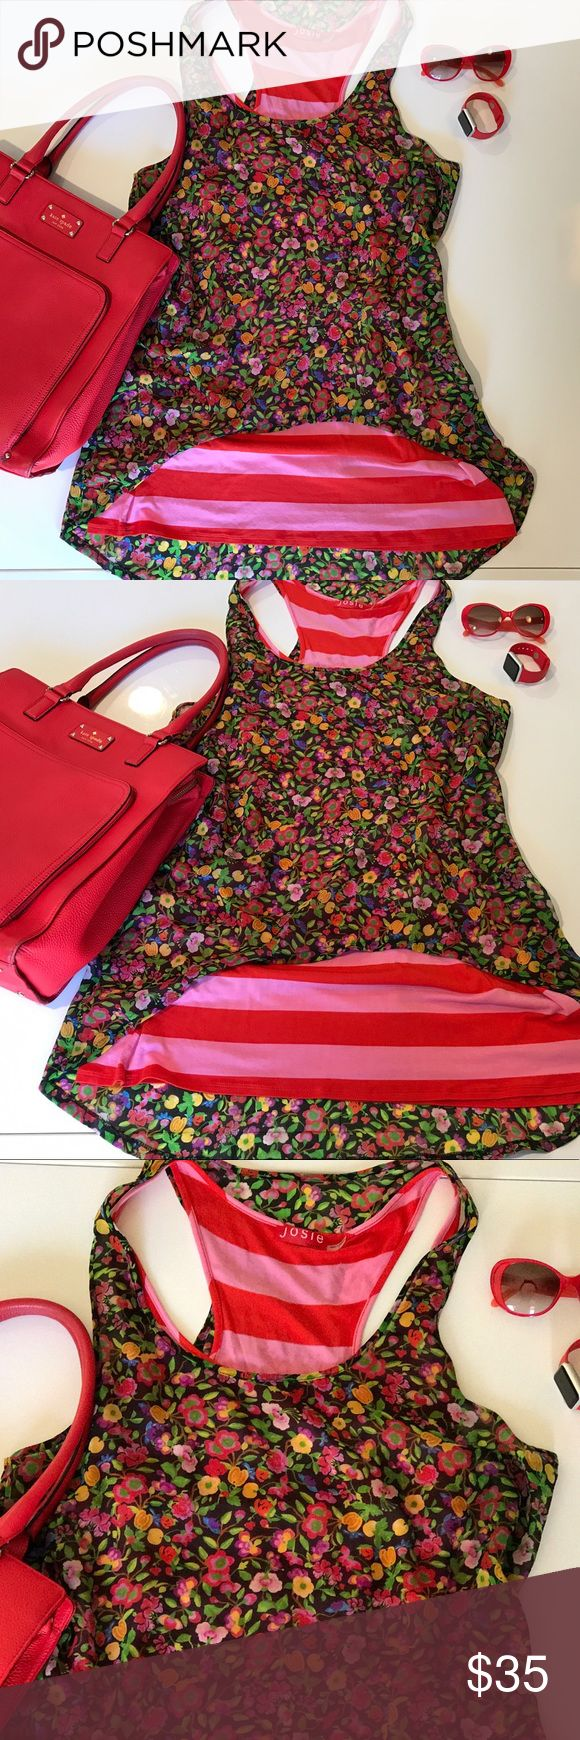 Josie Summer Spring Tunic Dress Josie Summer Spring Tunic Dress. Red and pink with flowered sheer top. Like new condition. Never worn! Josie Dresses Mini